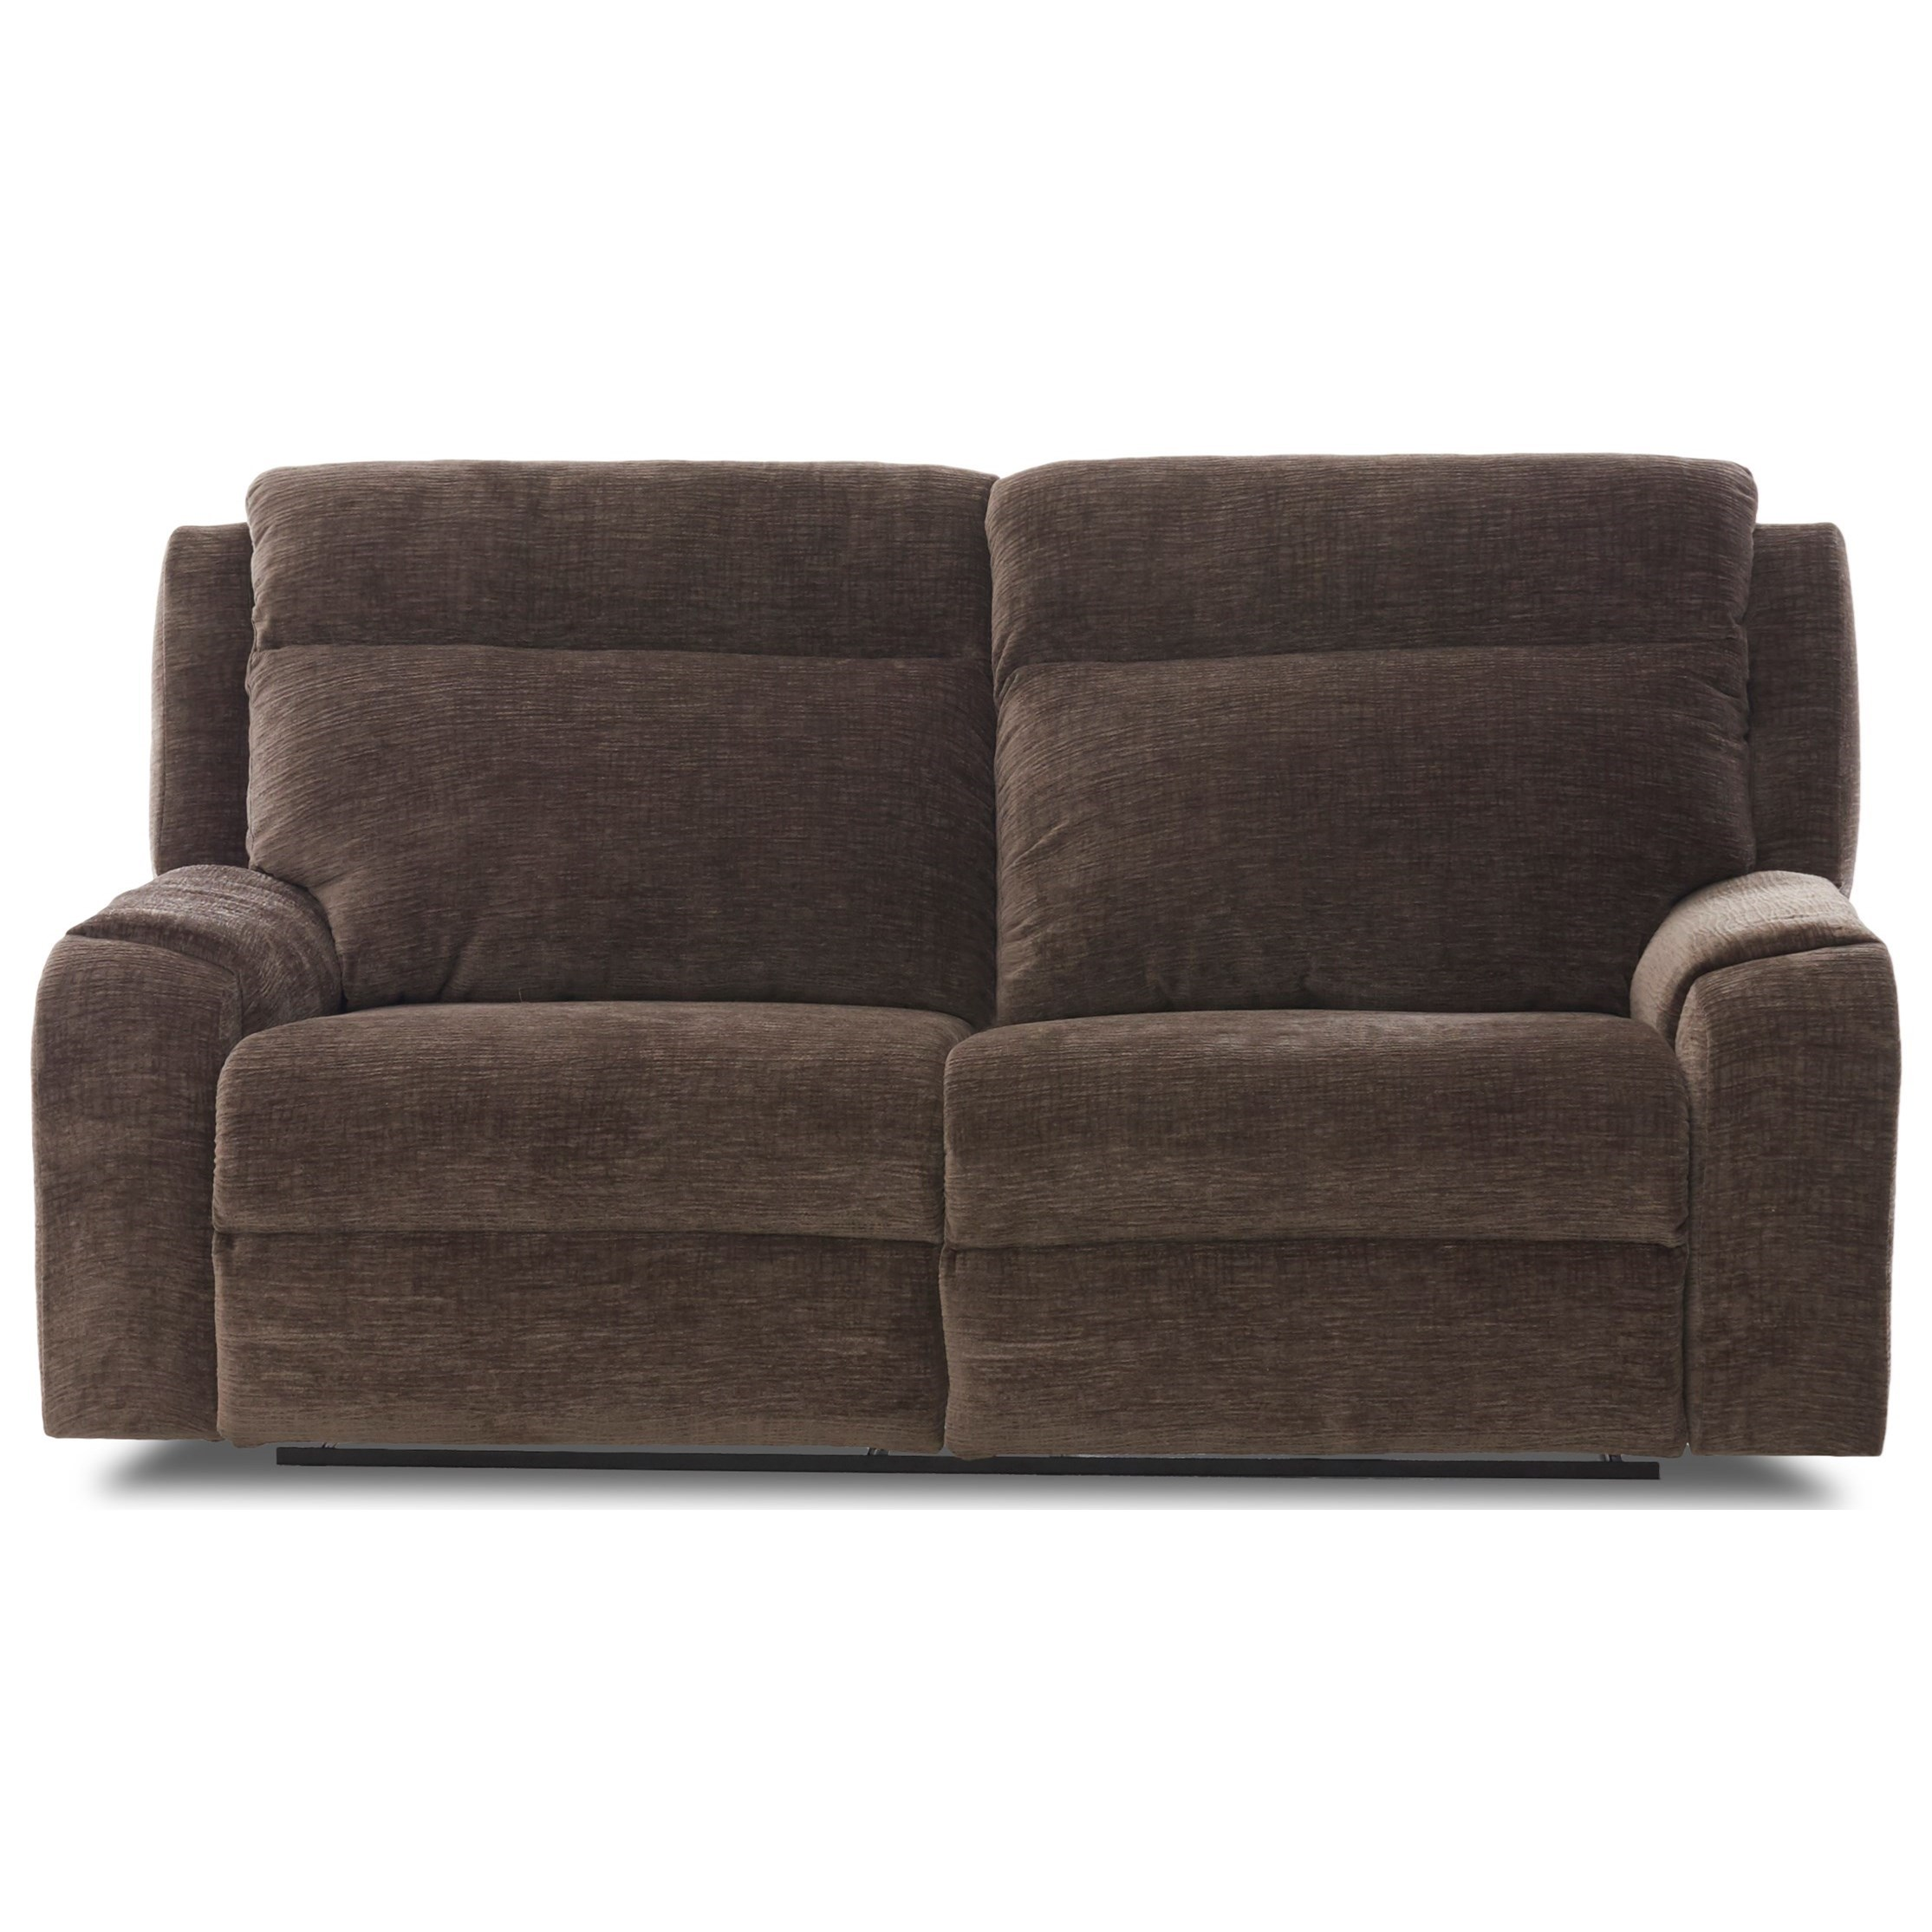 Reclining Sofa-2 over 2 w/ Pwr Headrests